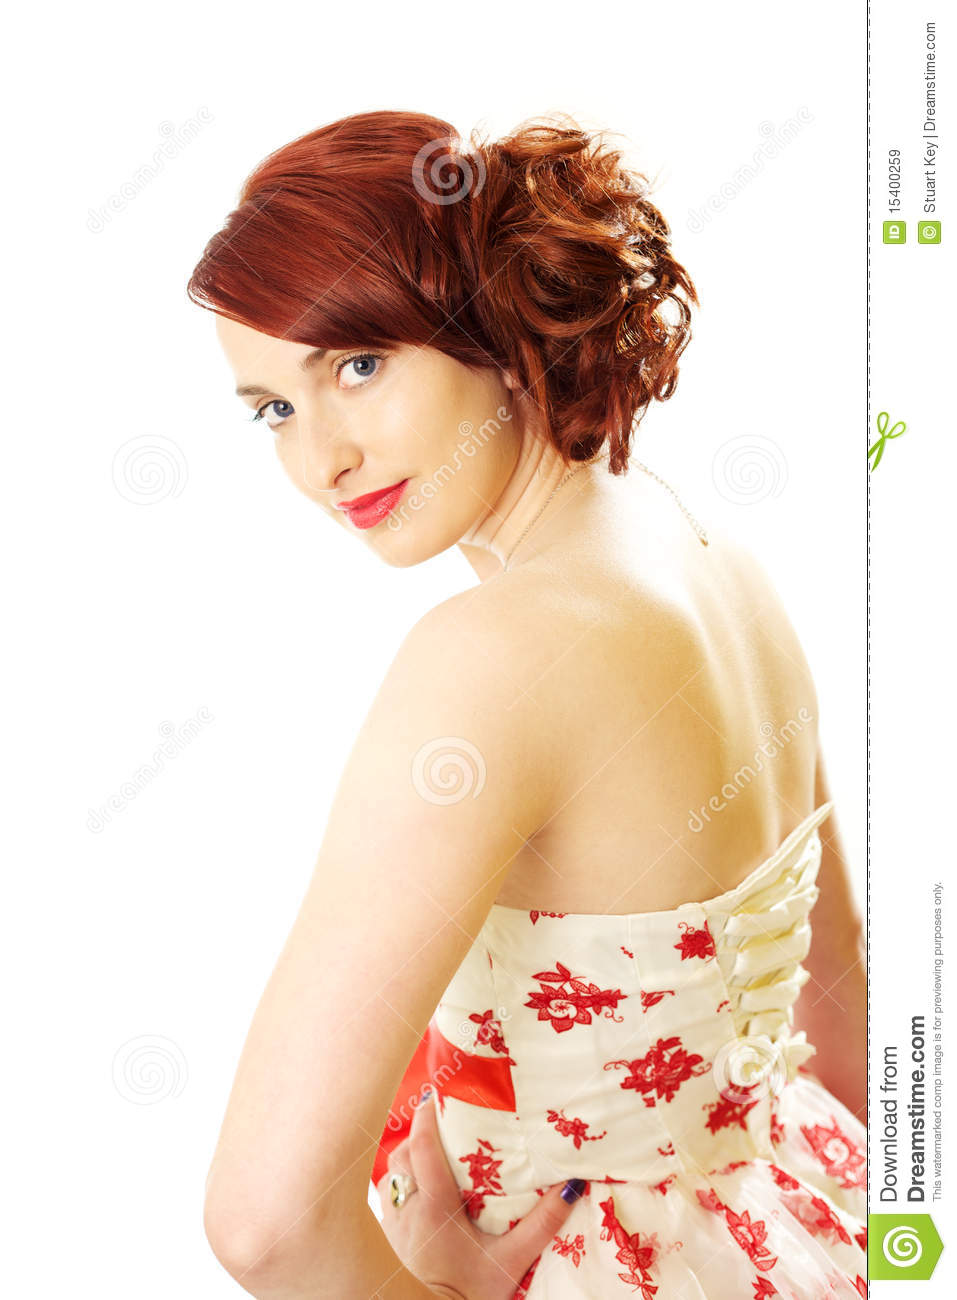 Royalty Free Stock Images Red Hair Beauty 50s Style Image15400259